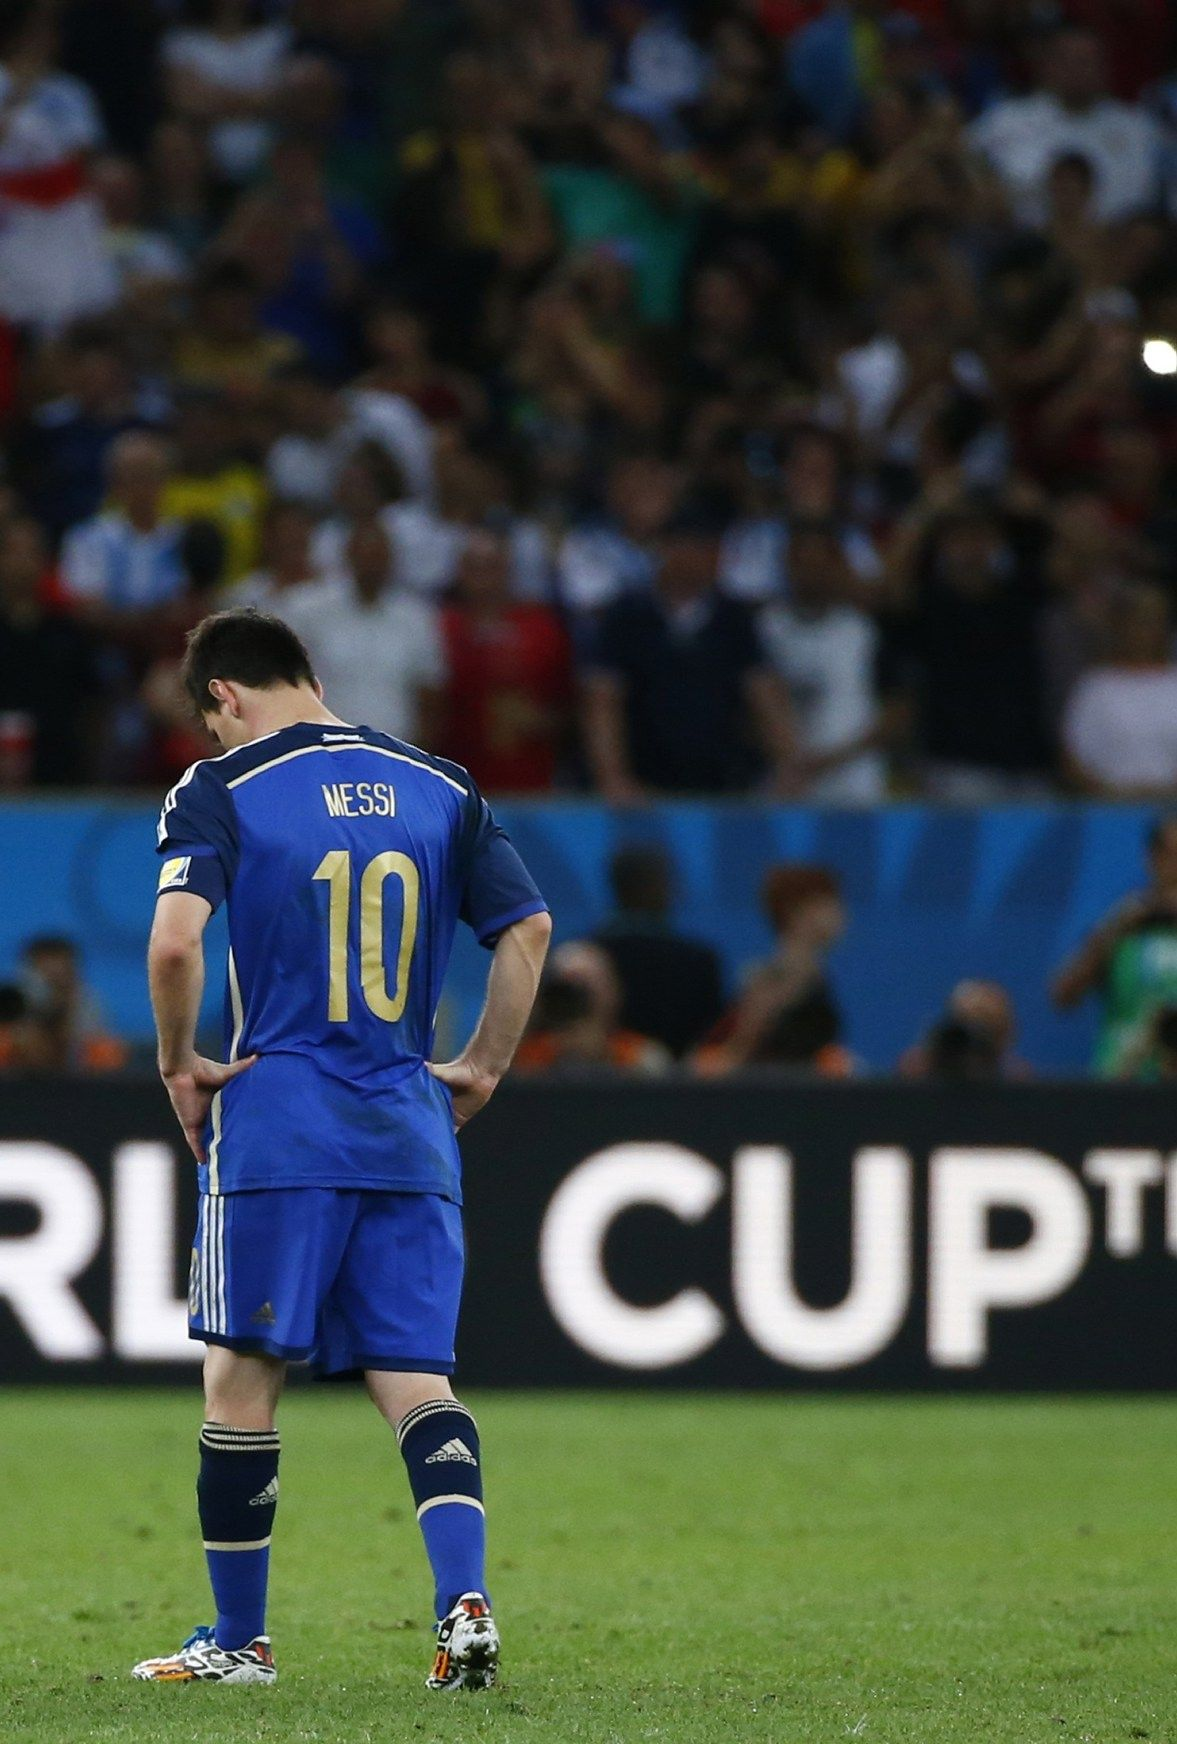 World Cup Final Argentina Vs Germany July 13 2014 Wc2014 Worldcup Worldcup2014 Messi Lionel Messi Lionel Messi Barcelona Messi